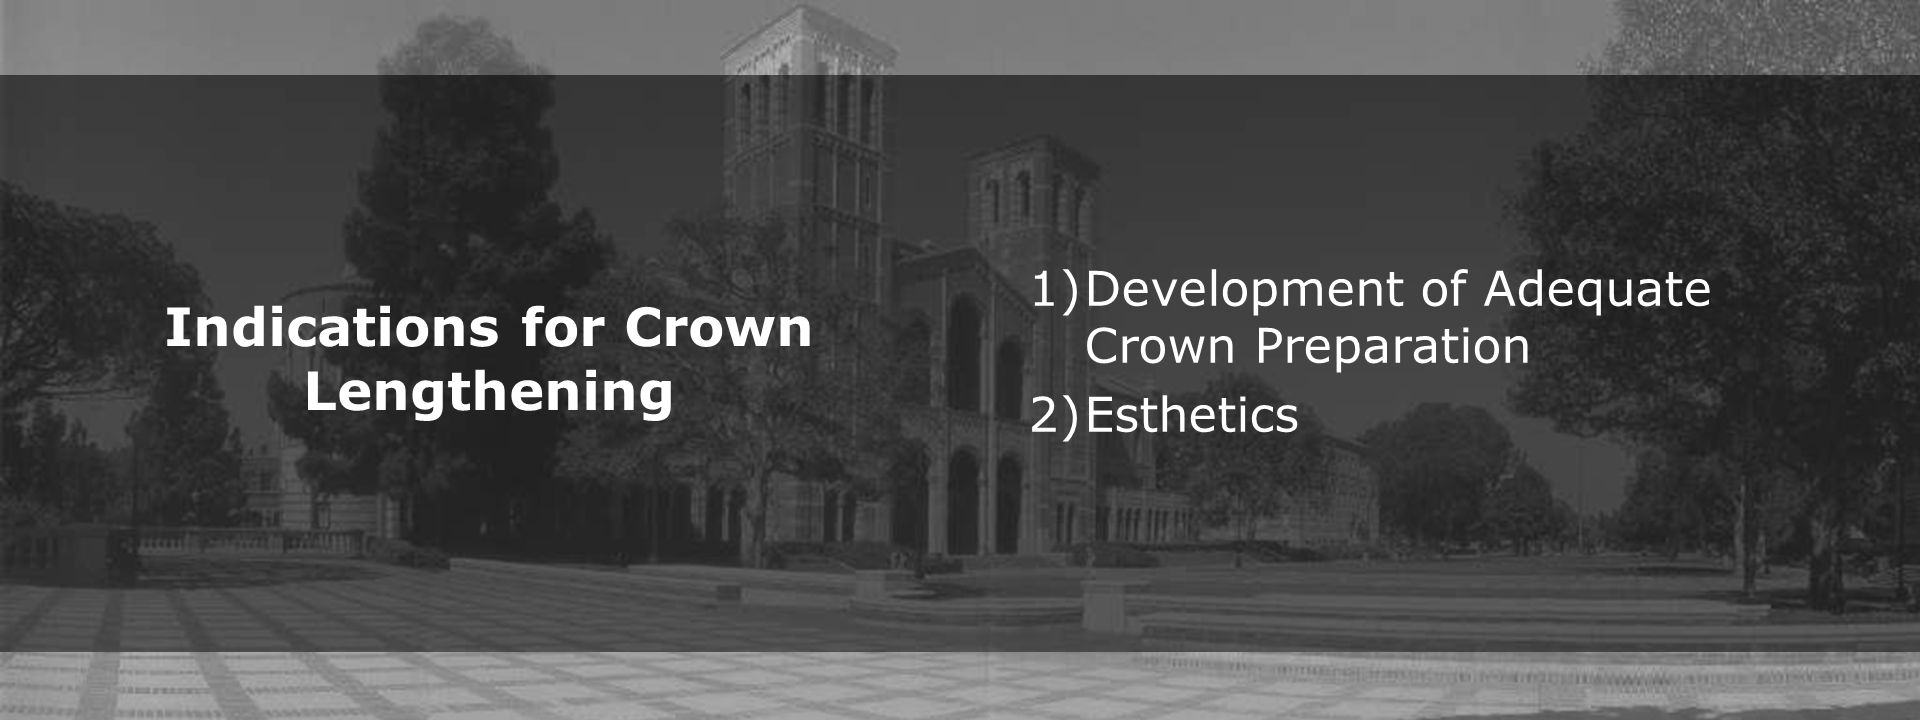 Indications for Crown Lengthening